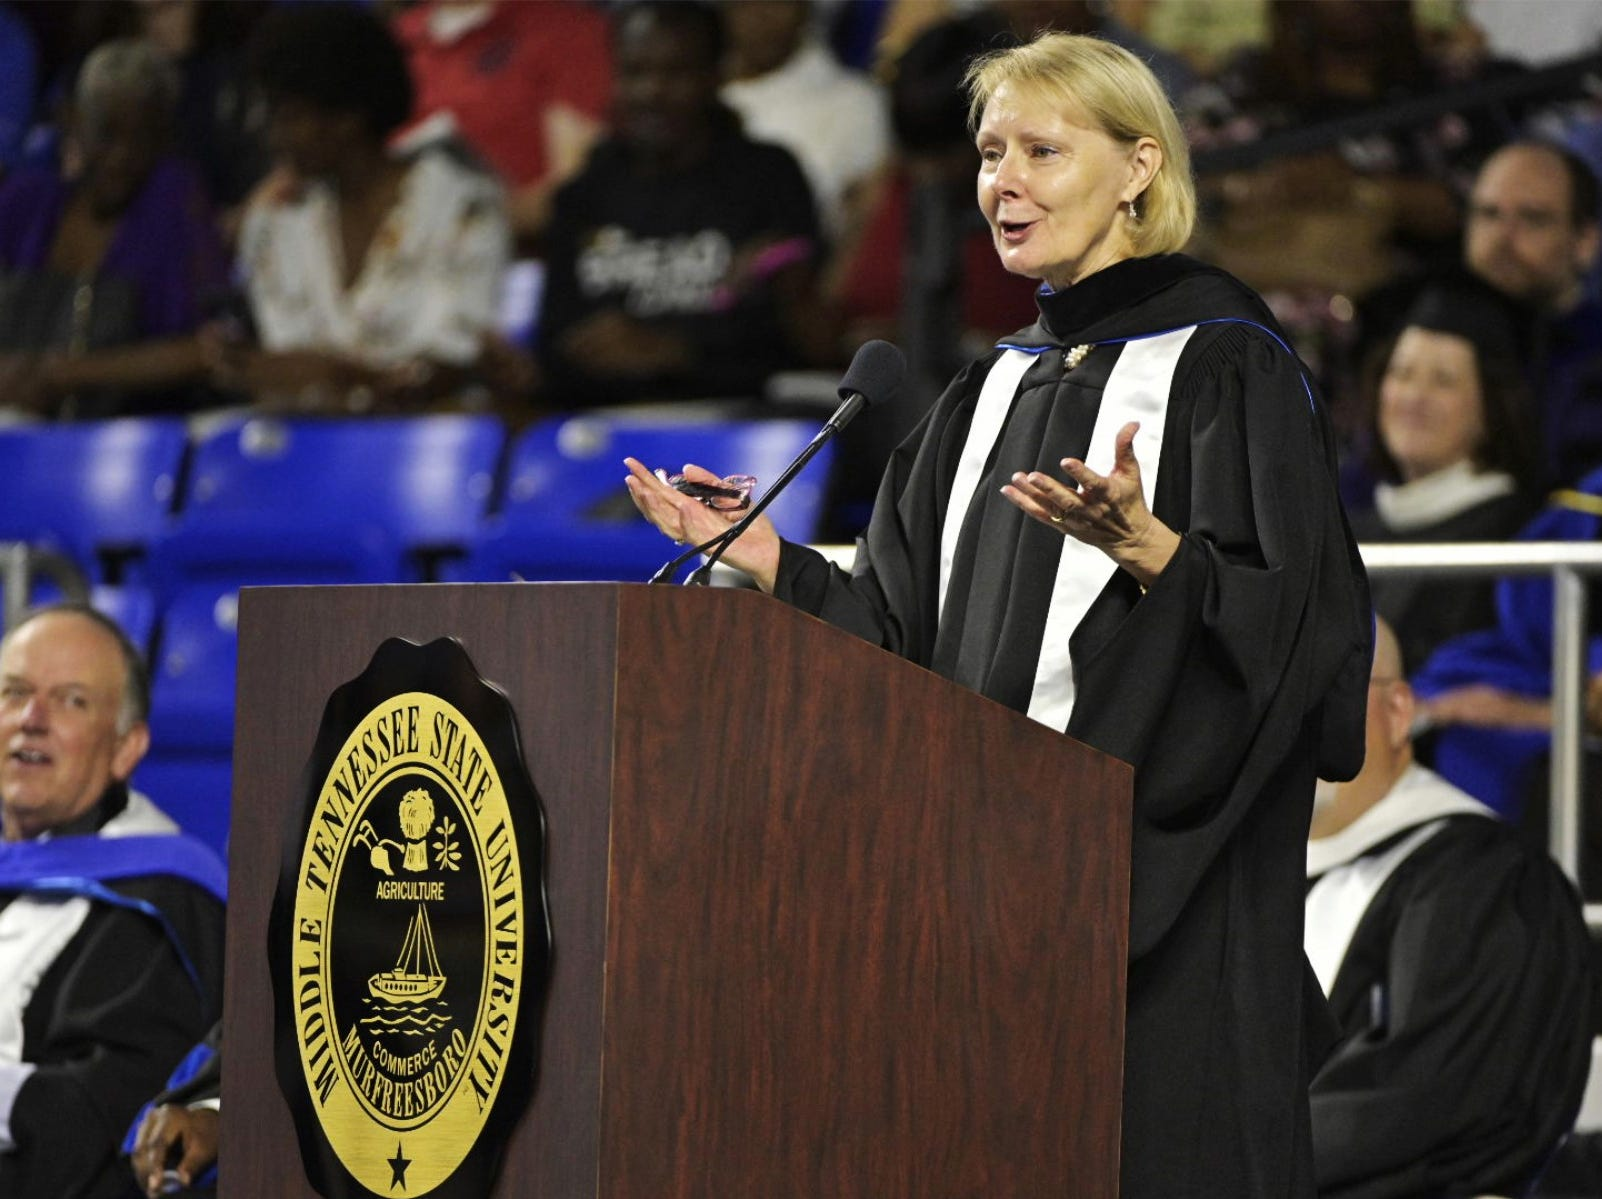 MTSU Board of Trustee member Christine Karbowiak was the speaker for the MTSU commencement ceremony on Saturday, May 4, 2019 for undergraduates at Murphy Center.